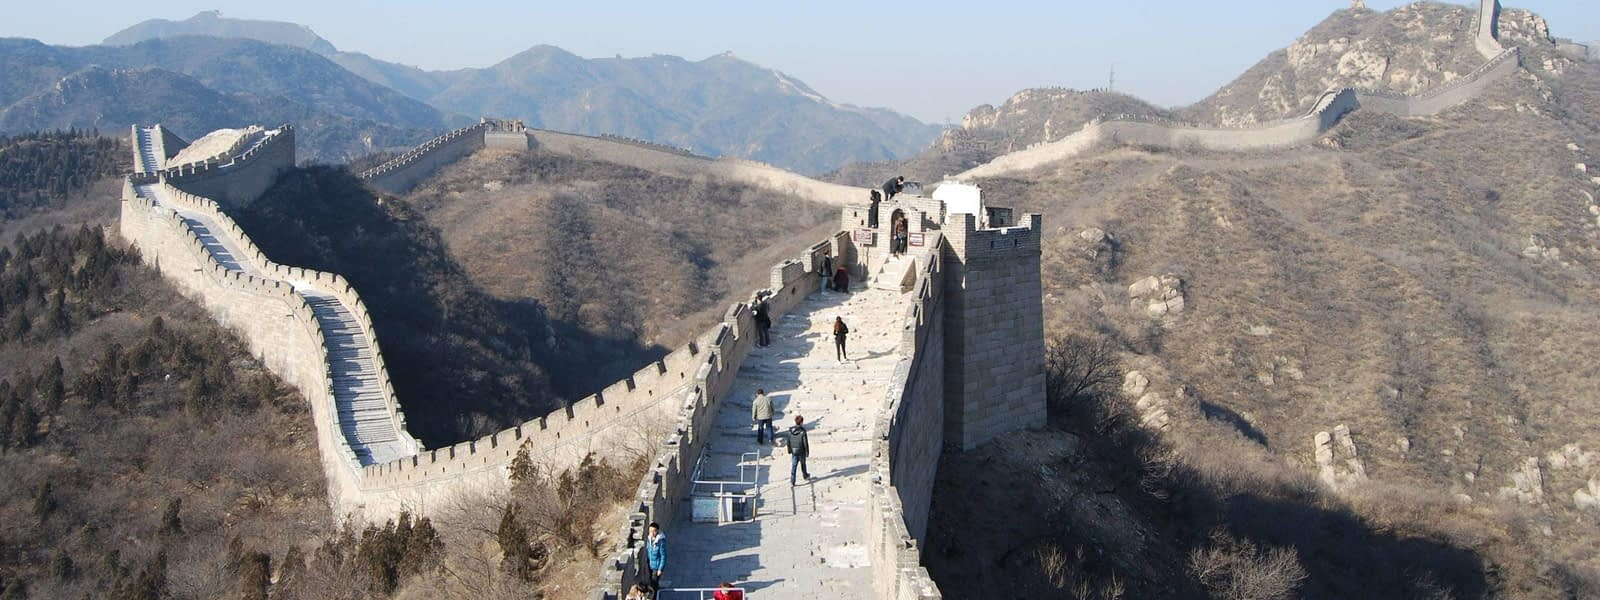 Shuiguan Great Wall of China